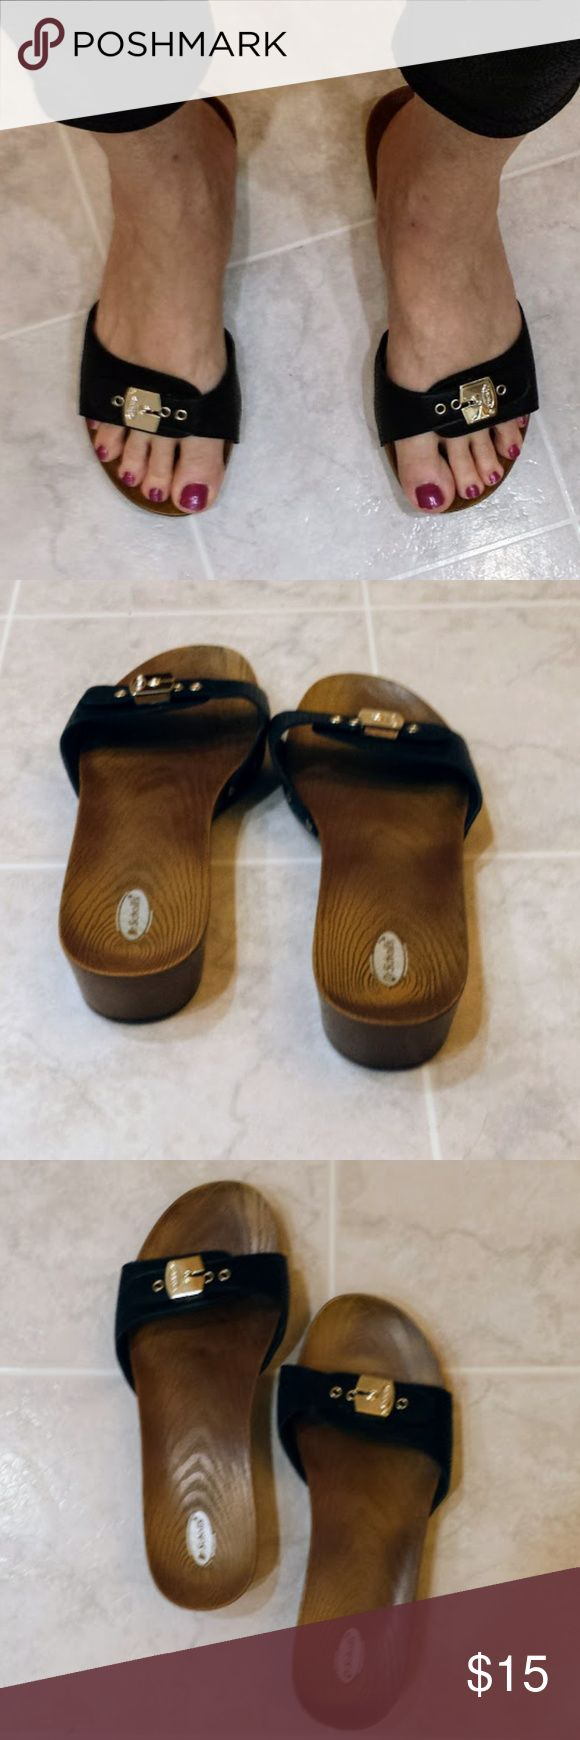 Dr. Scholl's Sandals Classic 9M EUC Classic style Dr. Scholl's sandals in size 9M. Black with gold trim and adjustable (velcro) across the top. These are in very good condition. Dr. Scholl's Shoes Sandals